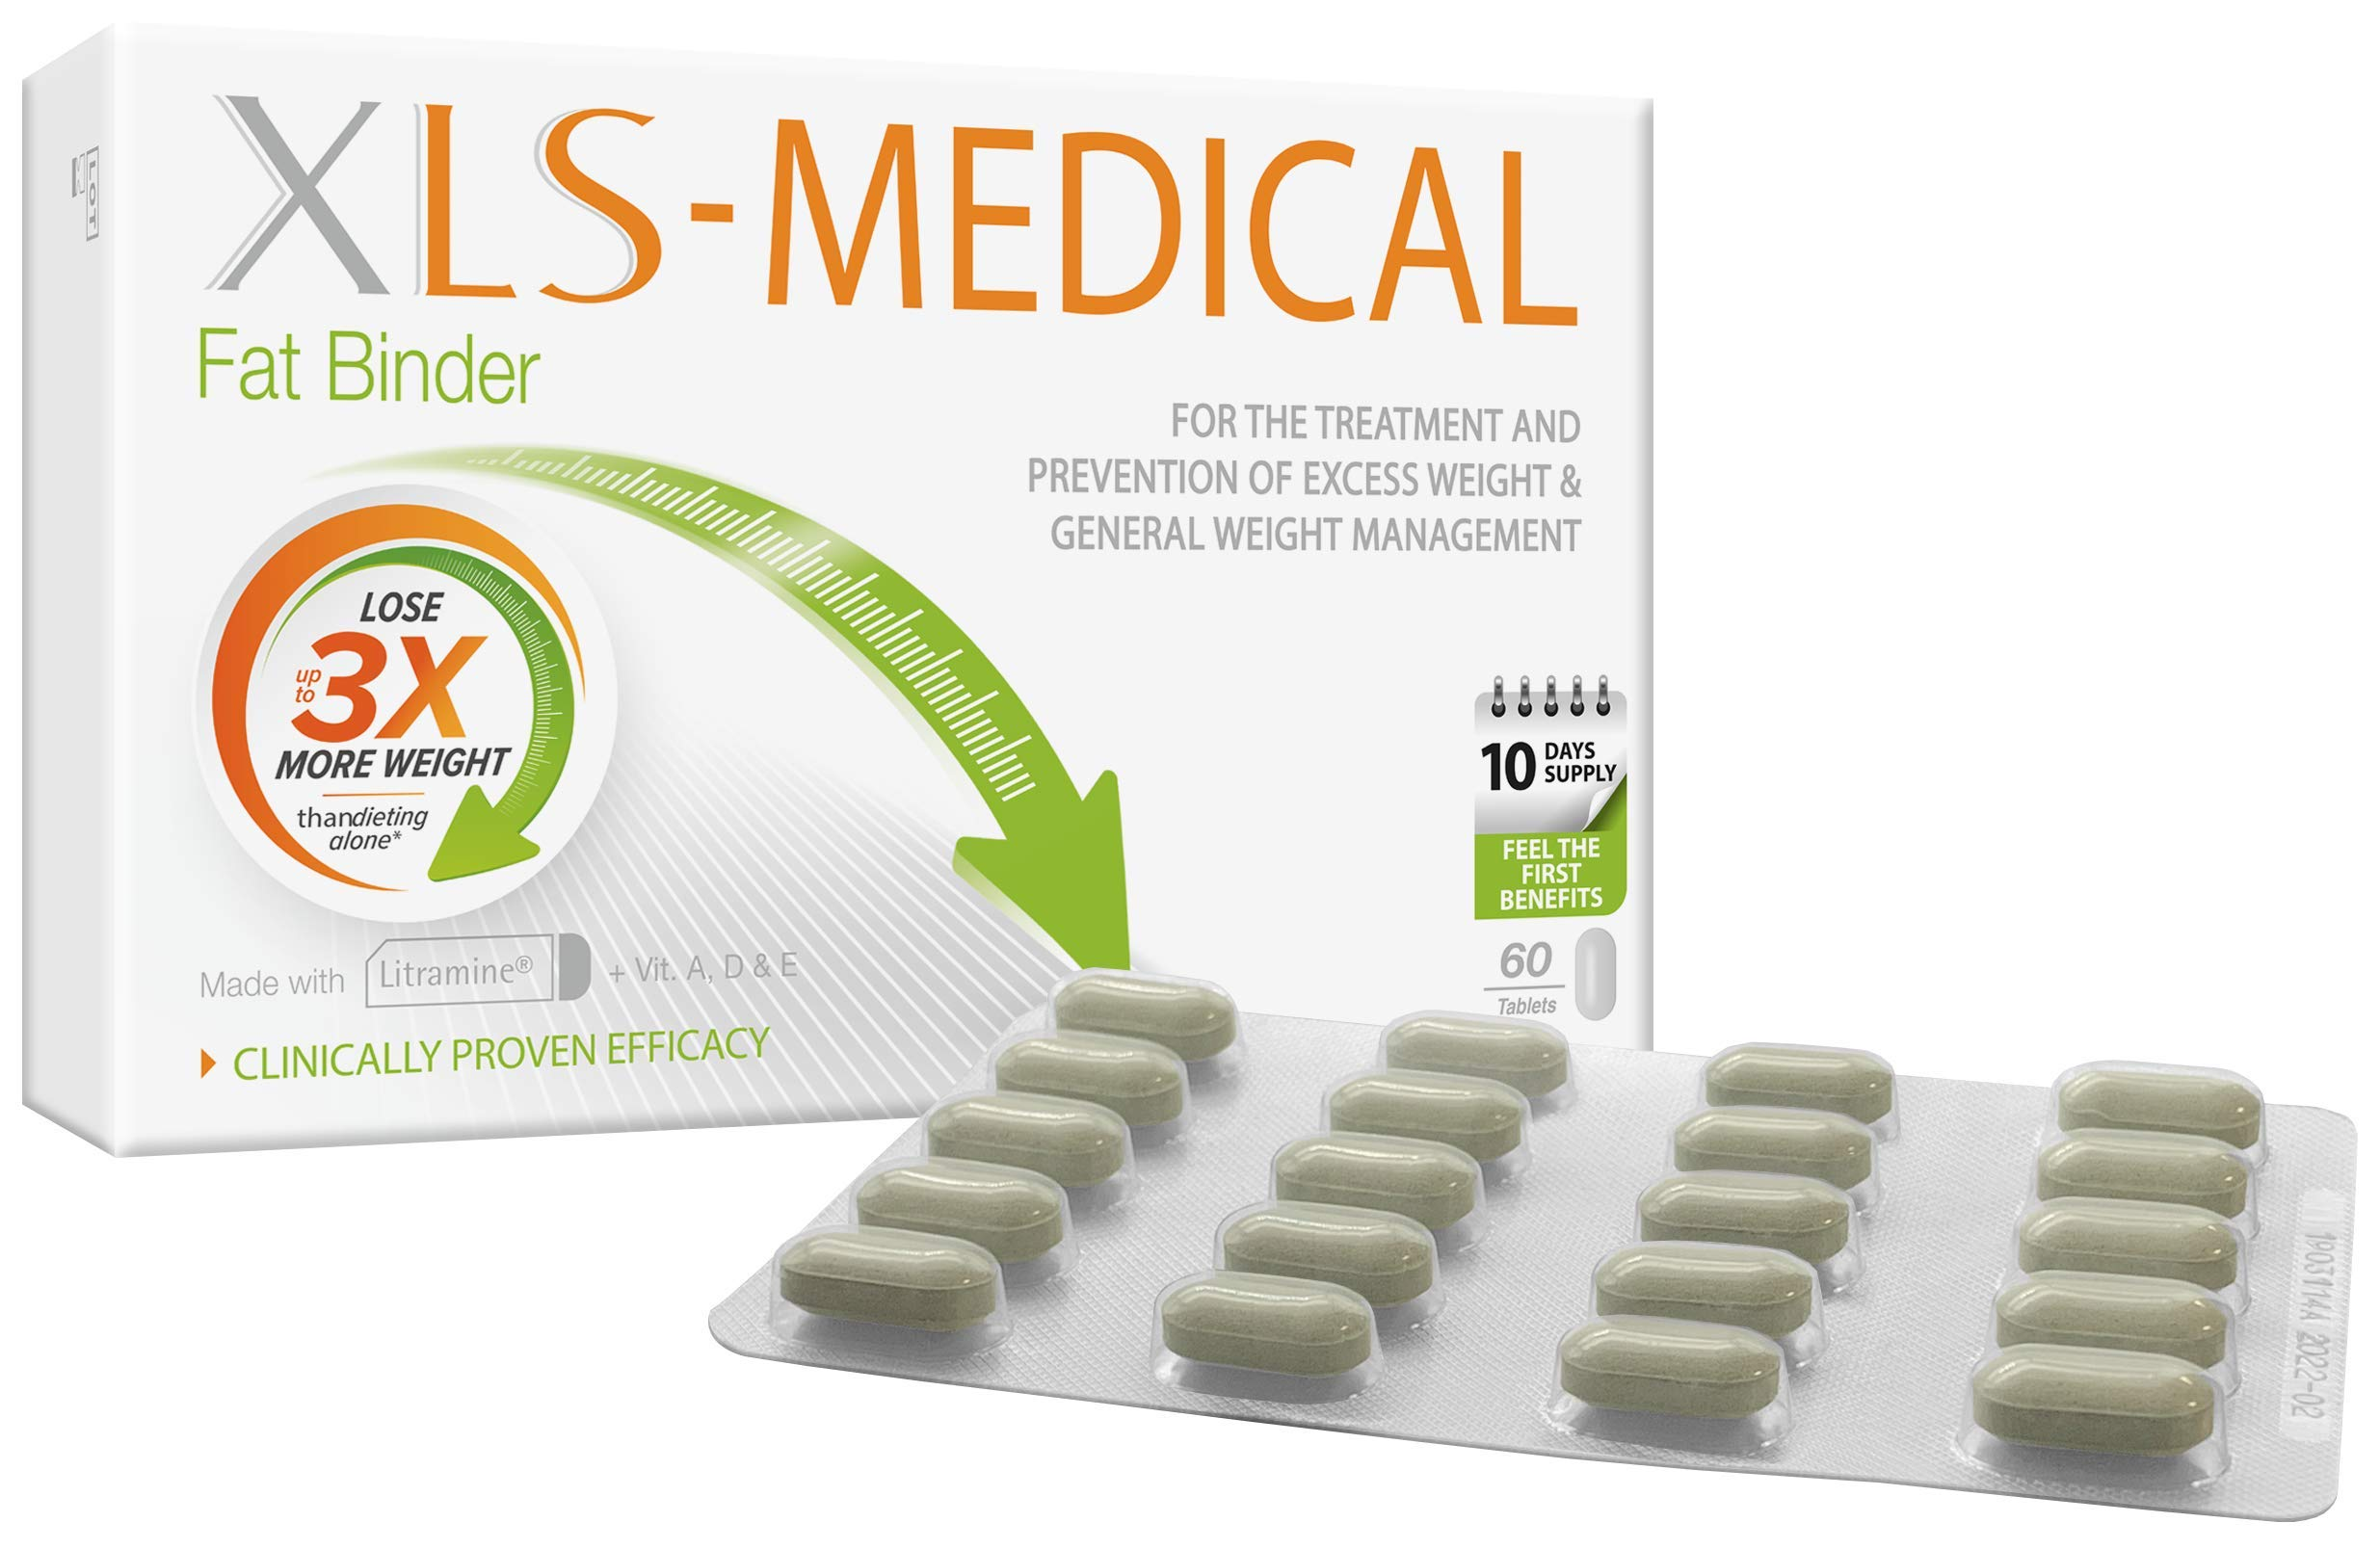 XLS Medical Fat Binder - Effective Weight Loss Aid to Reduce Calorie Intake - 60 Tablets, 10 Days